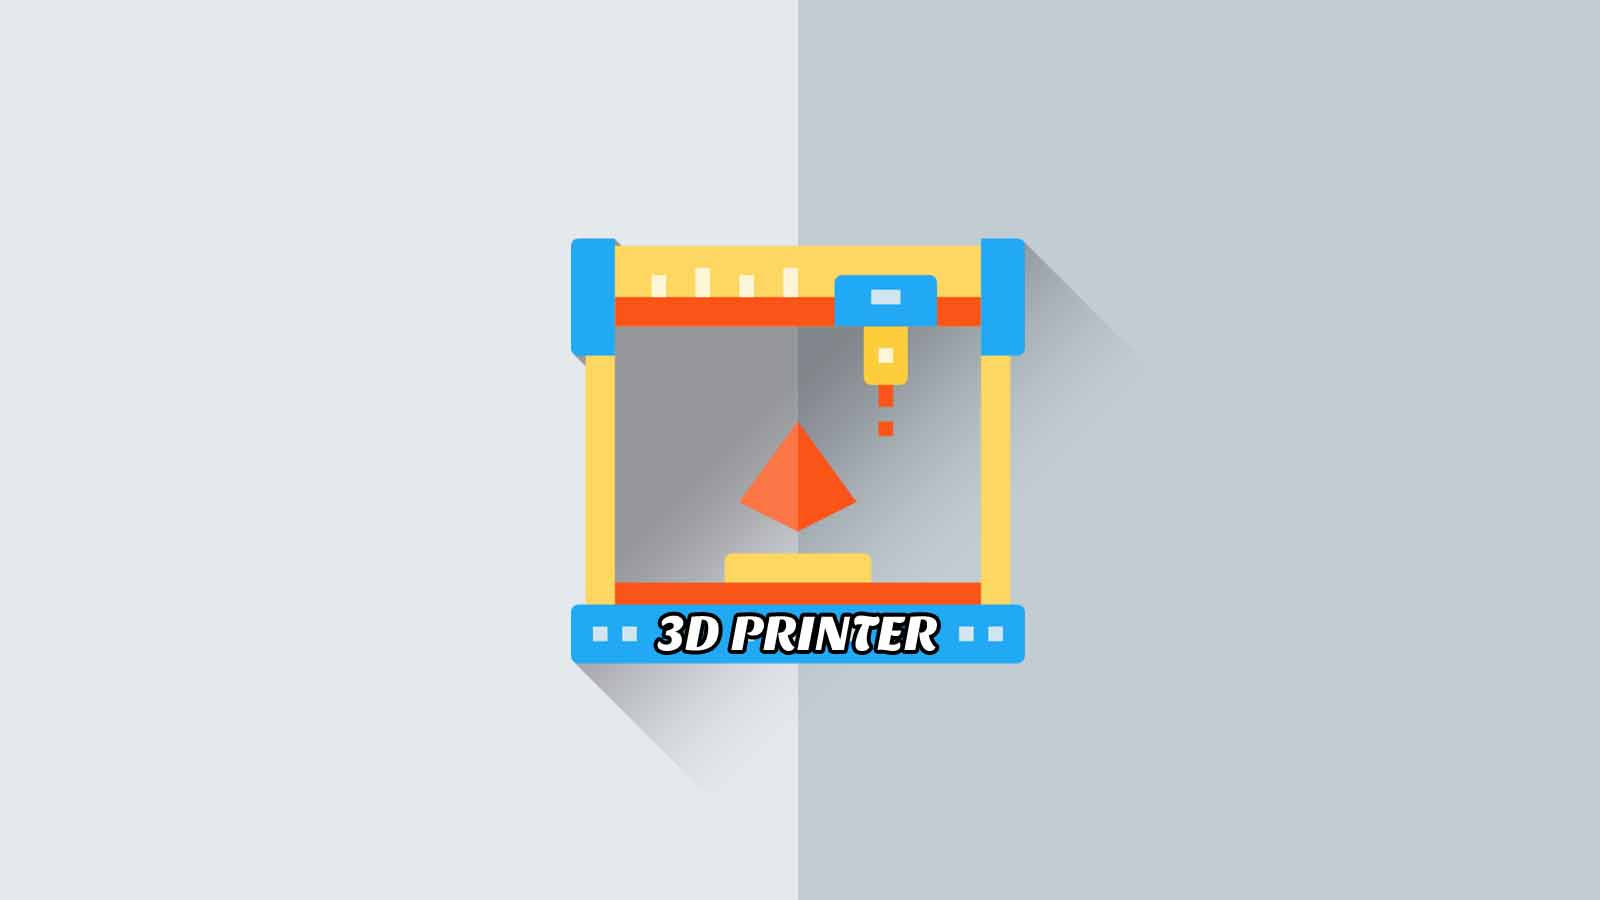 Daftar isi - 3D Printer